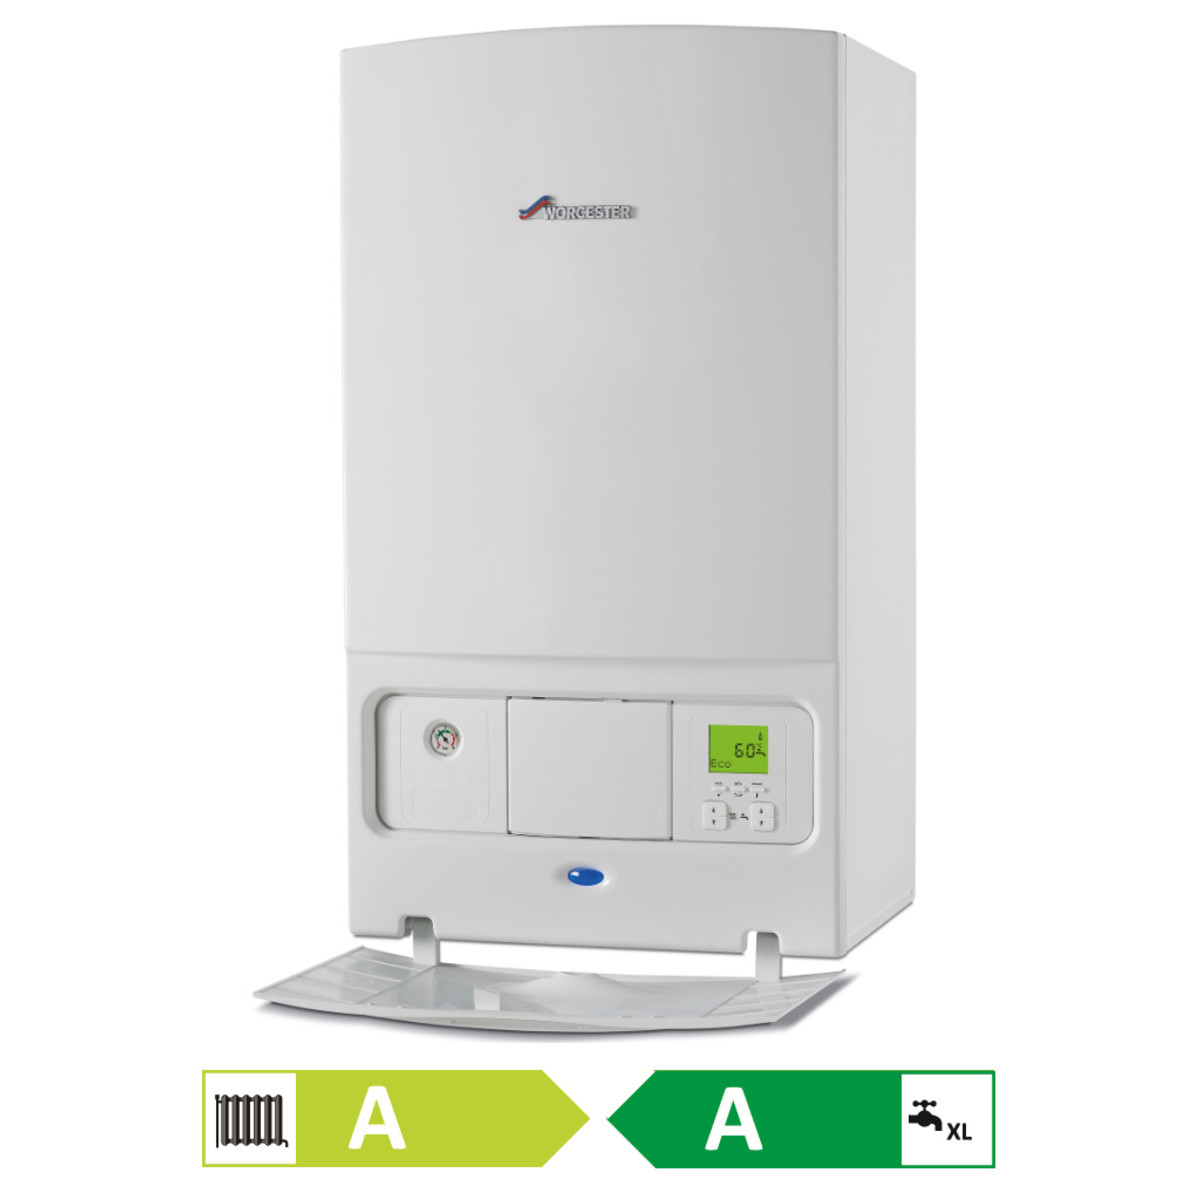 boiler-installations-essex